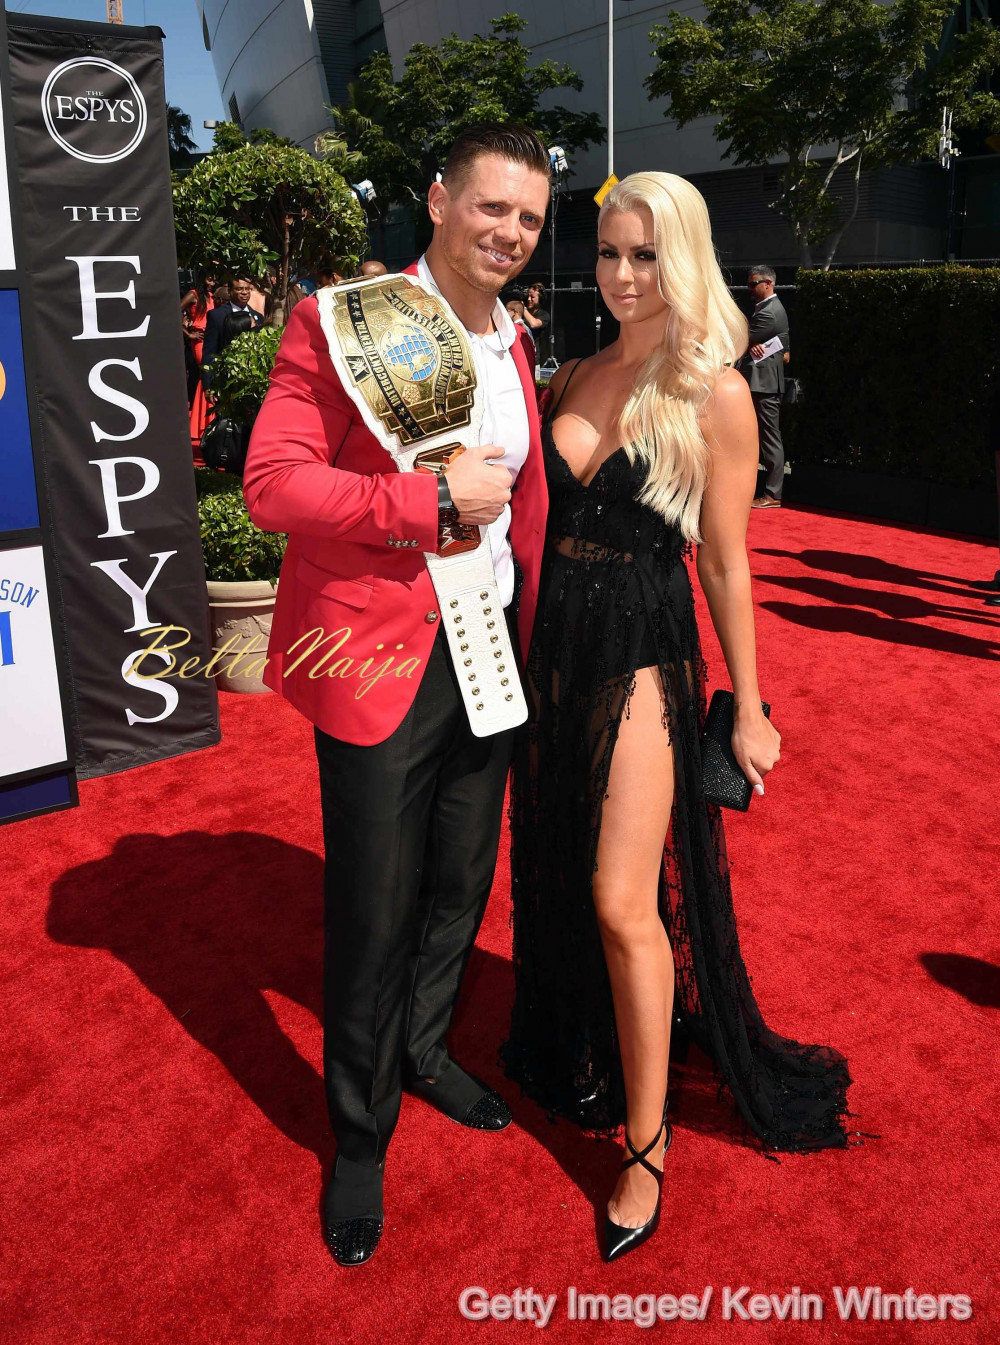 the miz and maryse ouellet - Stephen Curry Wedding Ring